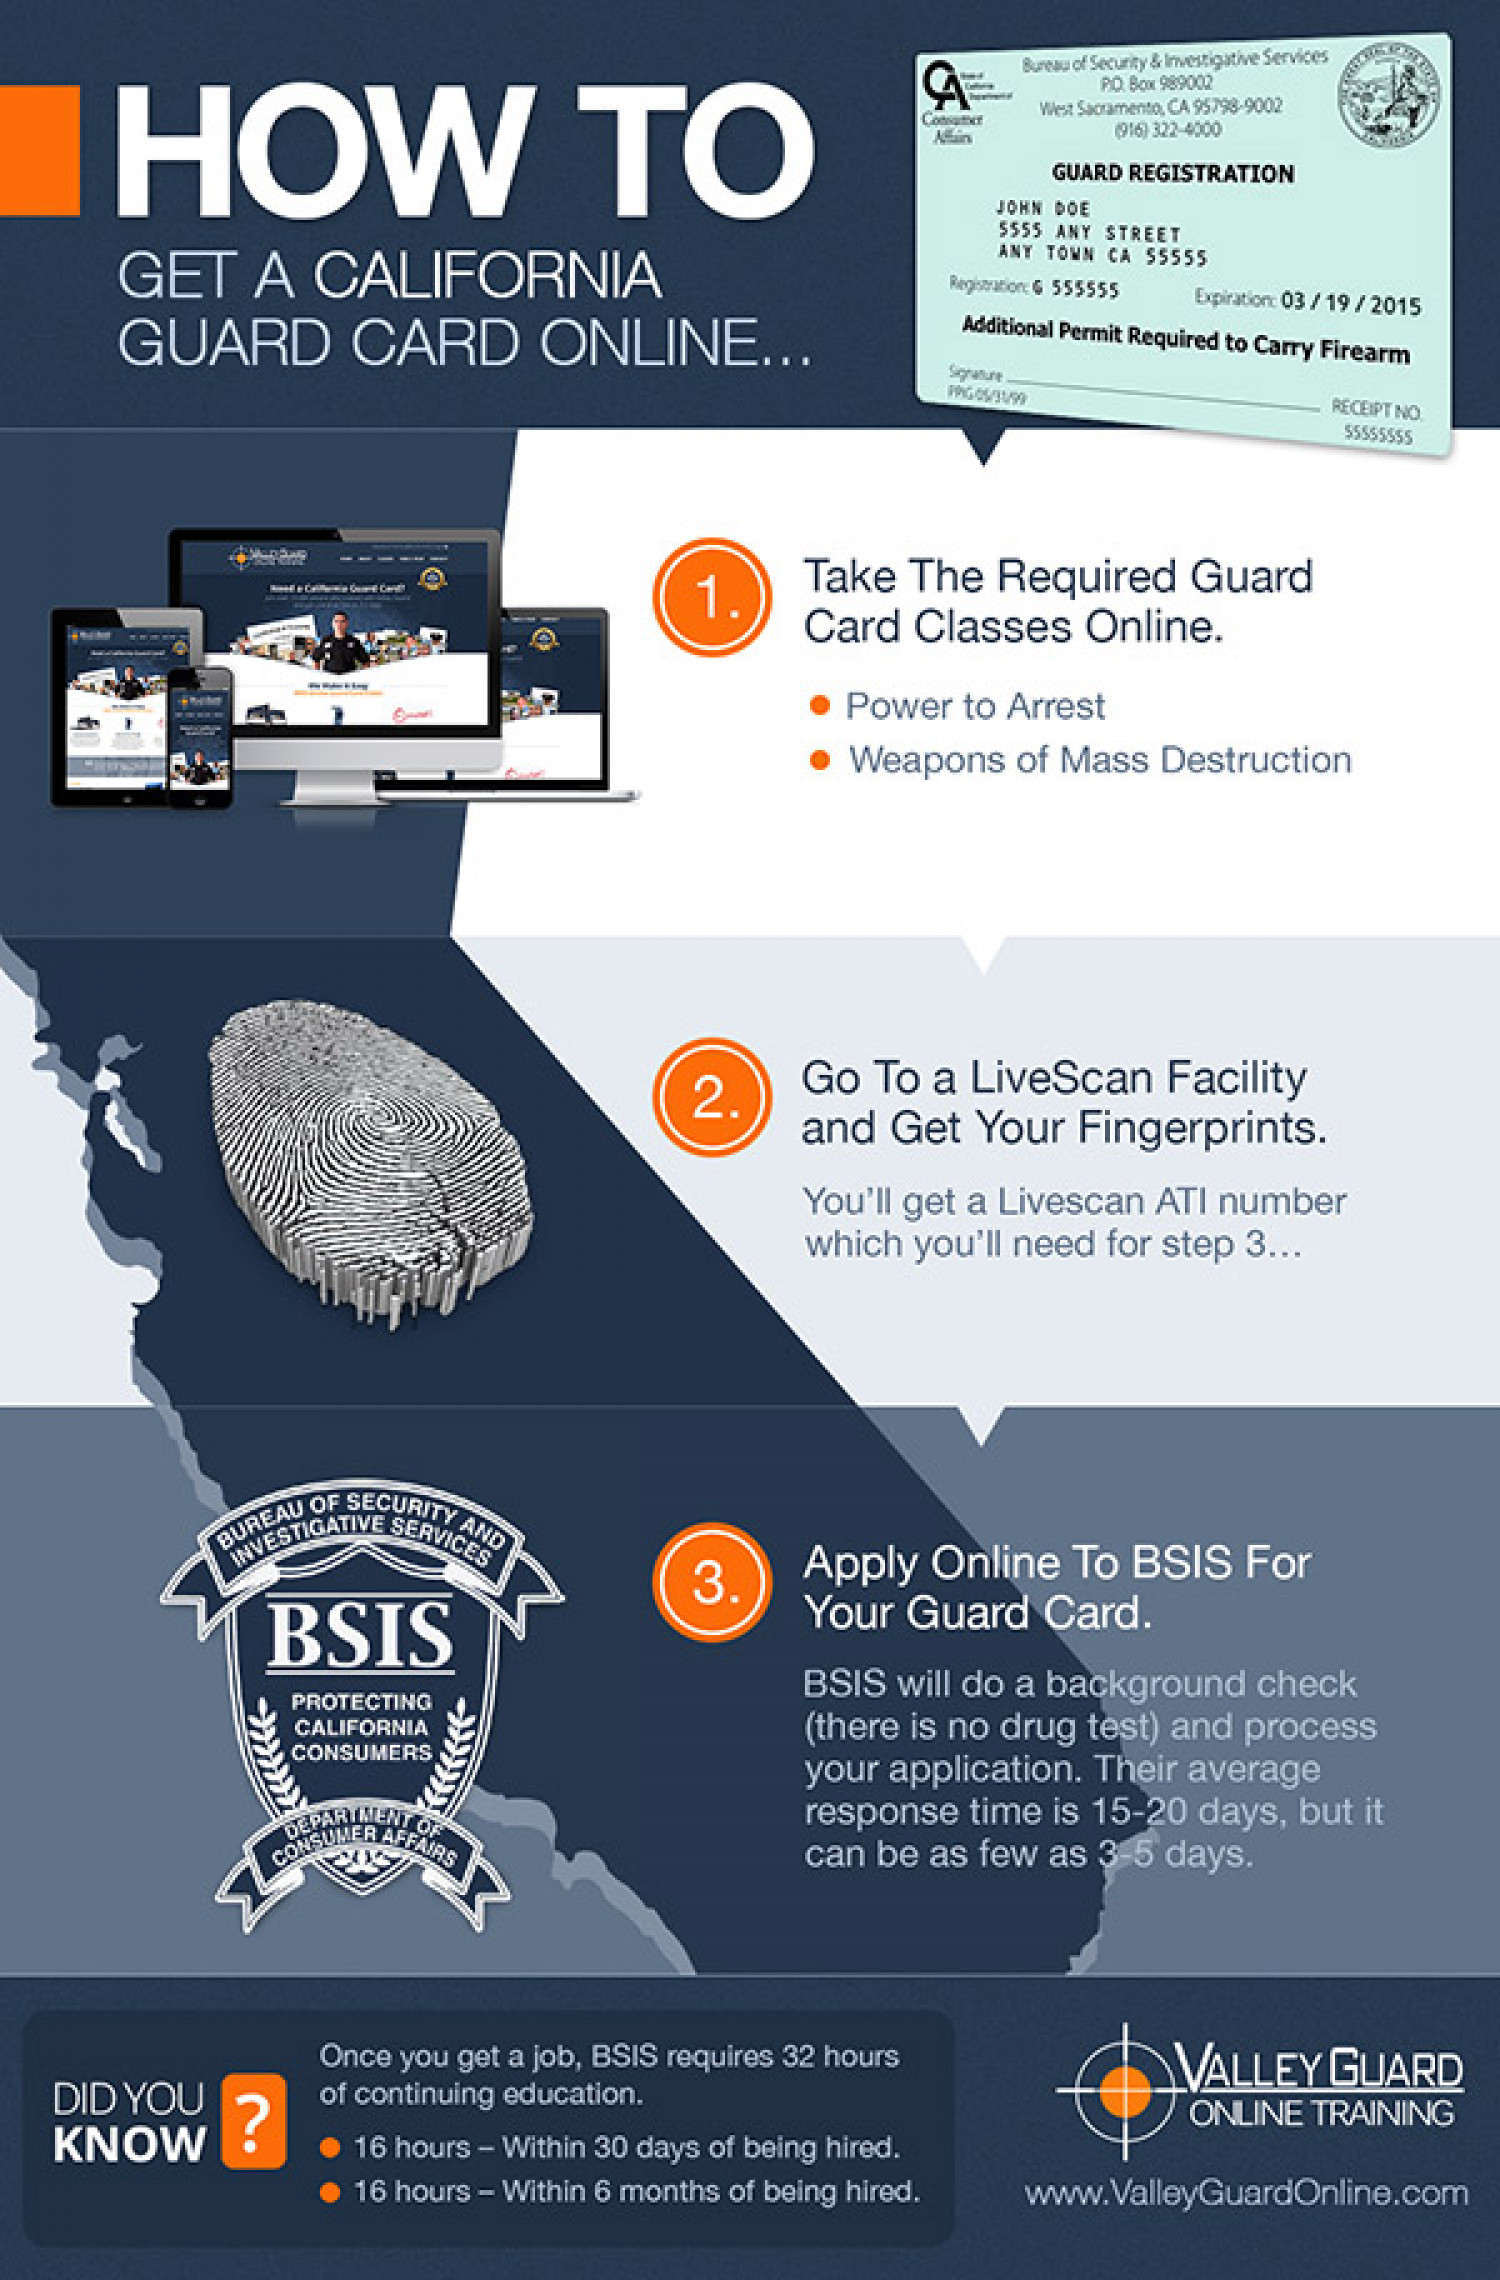 How to Get a California Guard Card Online Infographic